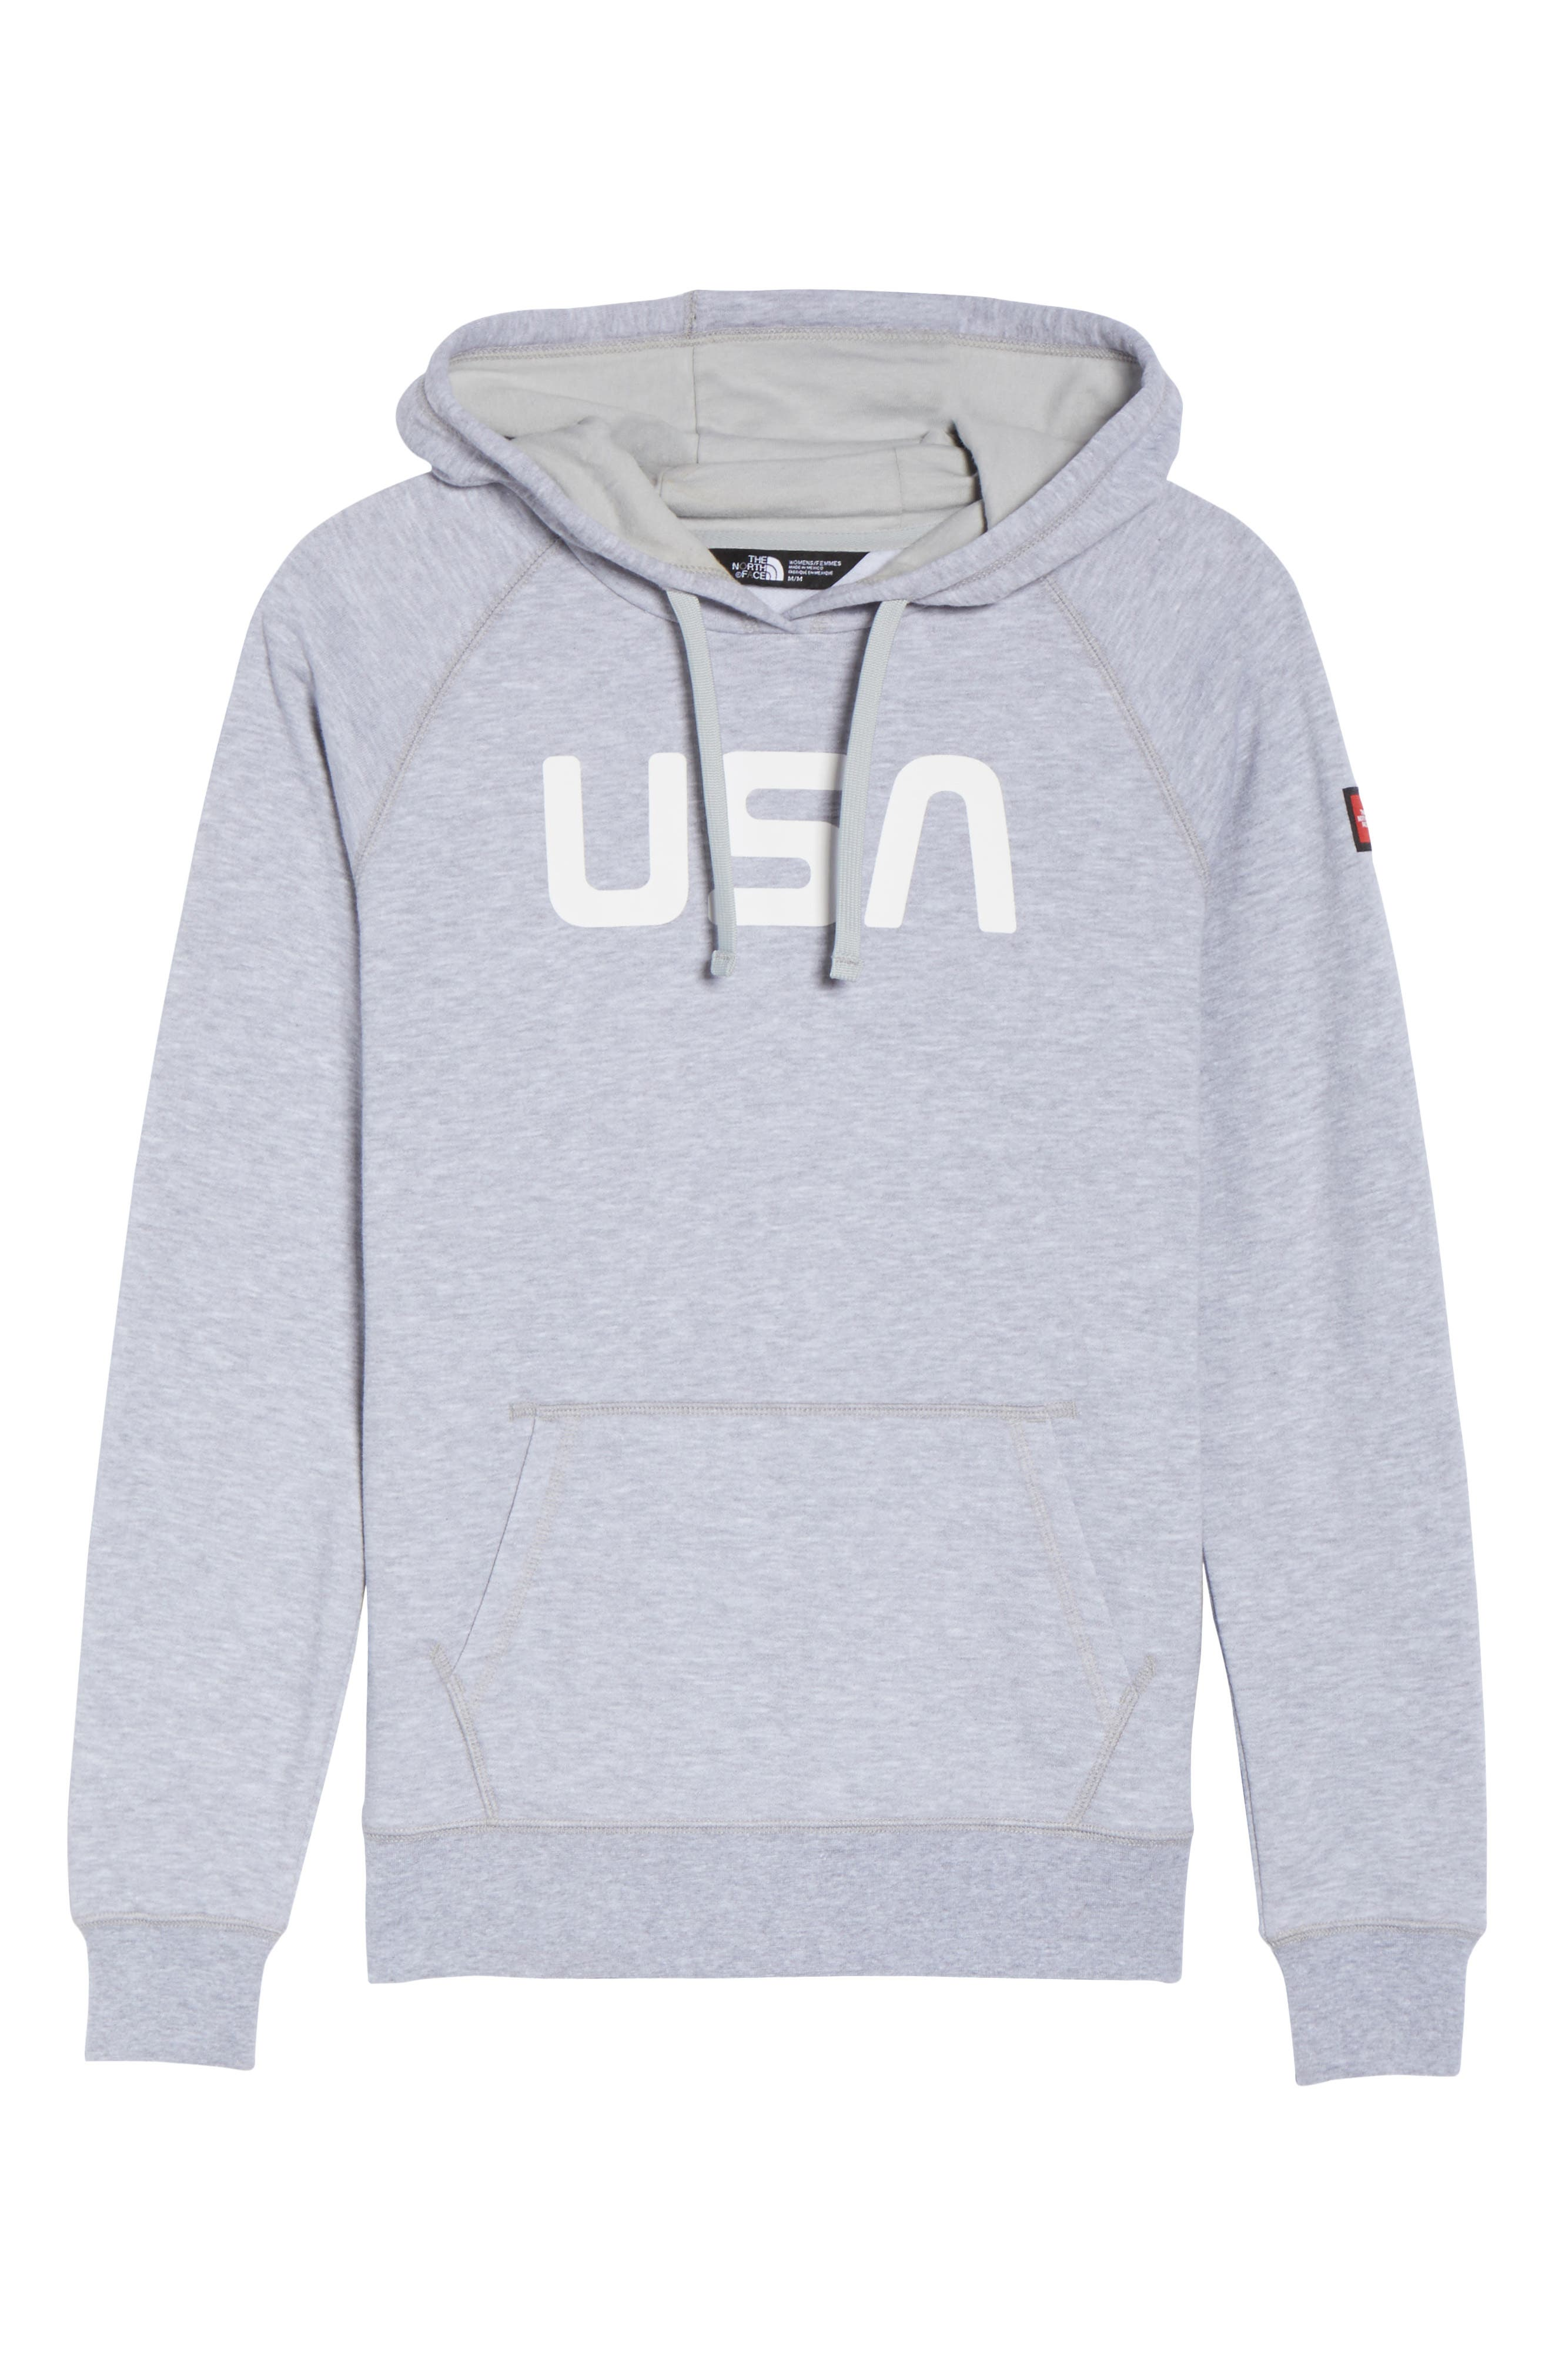 International Collection USA Pullover Hoodie,                             Alternate thumbnail 7, color,                             Tnf Light Grey Heather